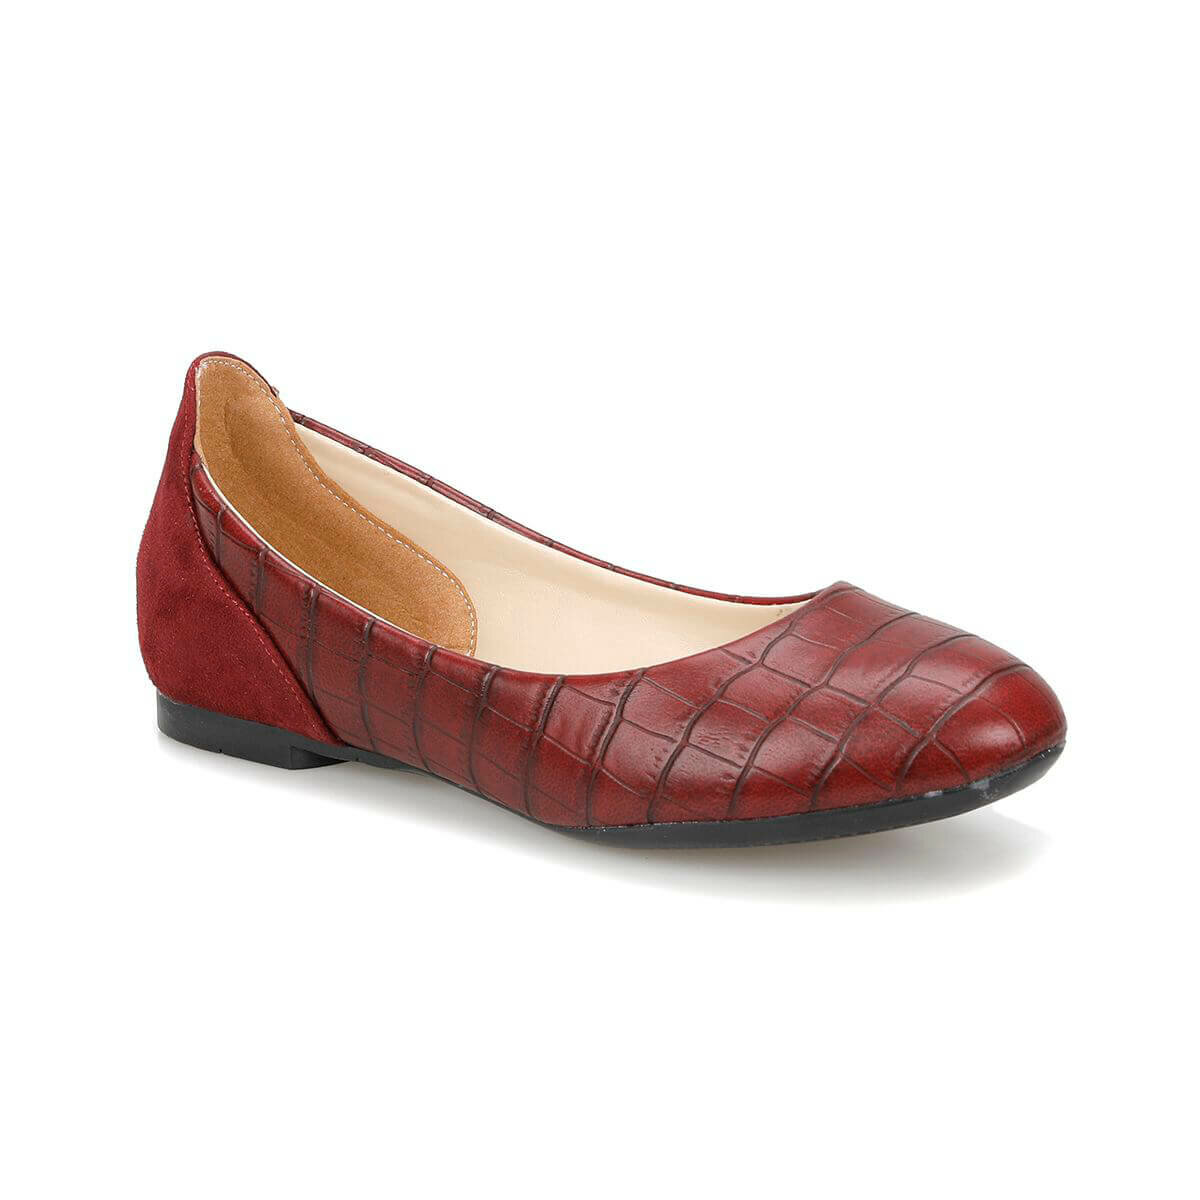 FLO 82. 310200.Z Burgundy Women 'S Shoes Polaris